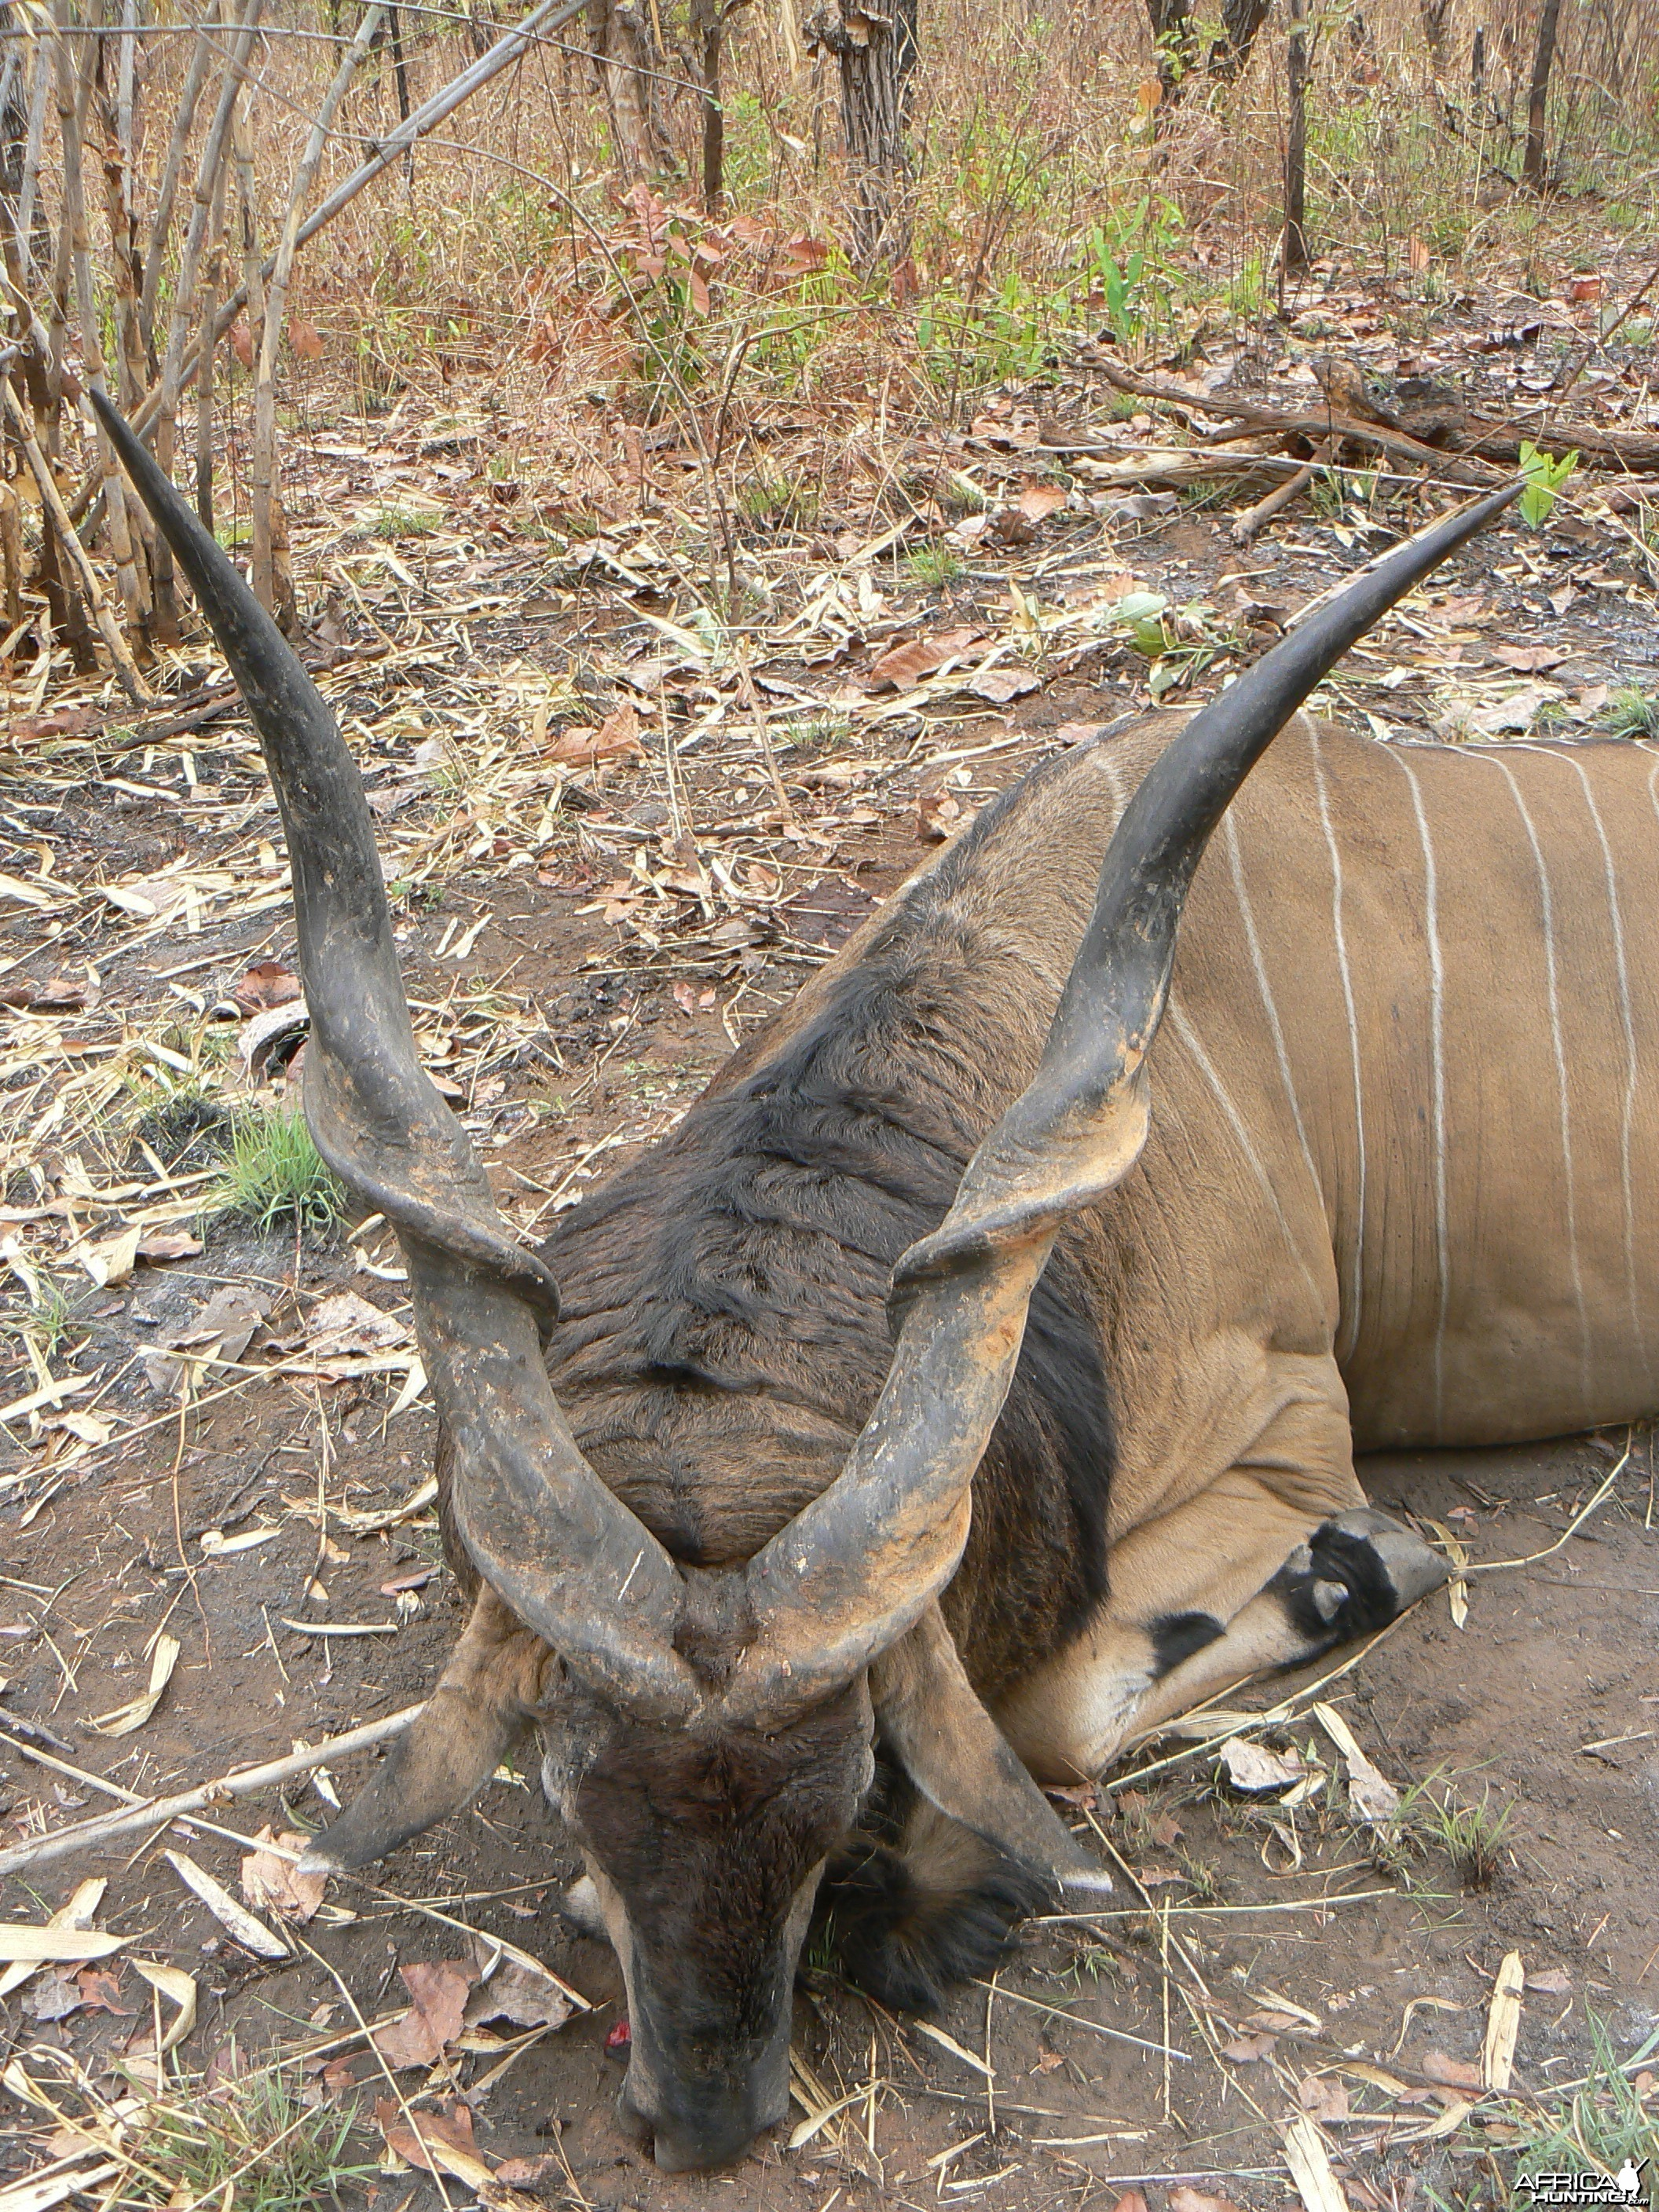 Big Eland bull from CAR, big neck, black hairs a truly great trophy